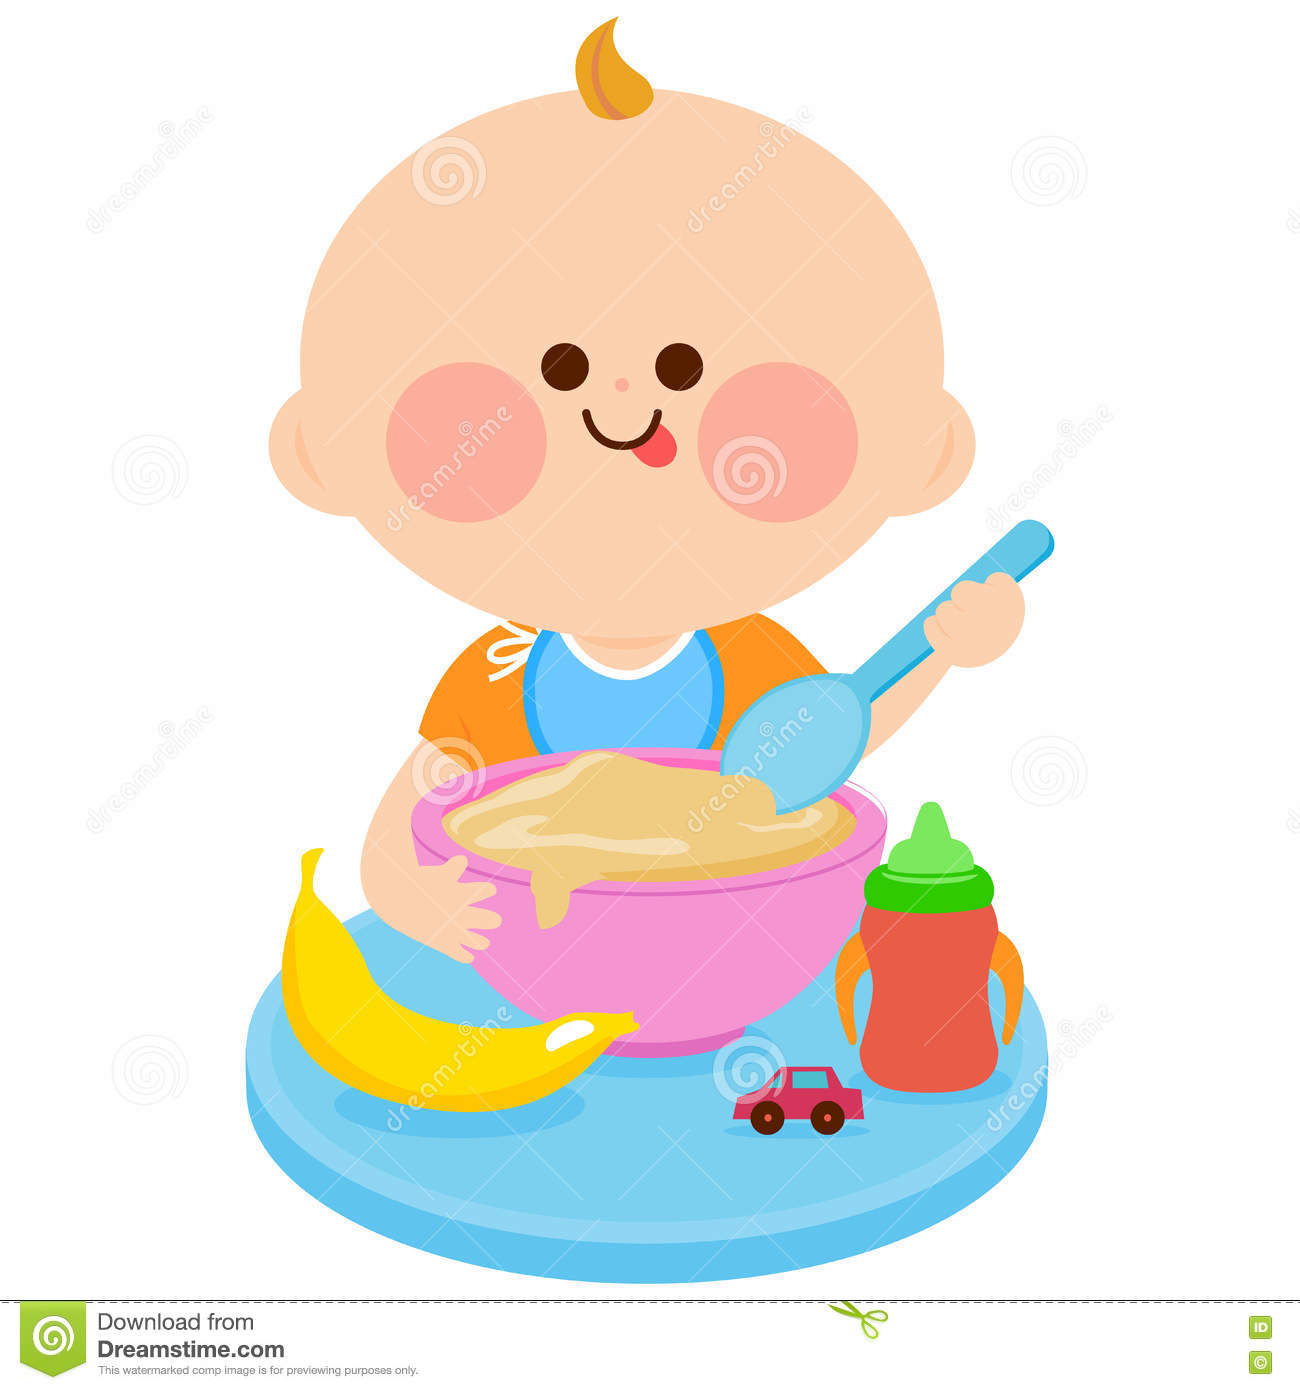 baby eating clipart - photo #17